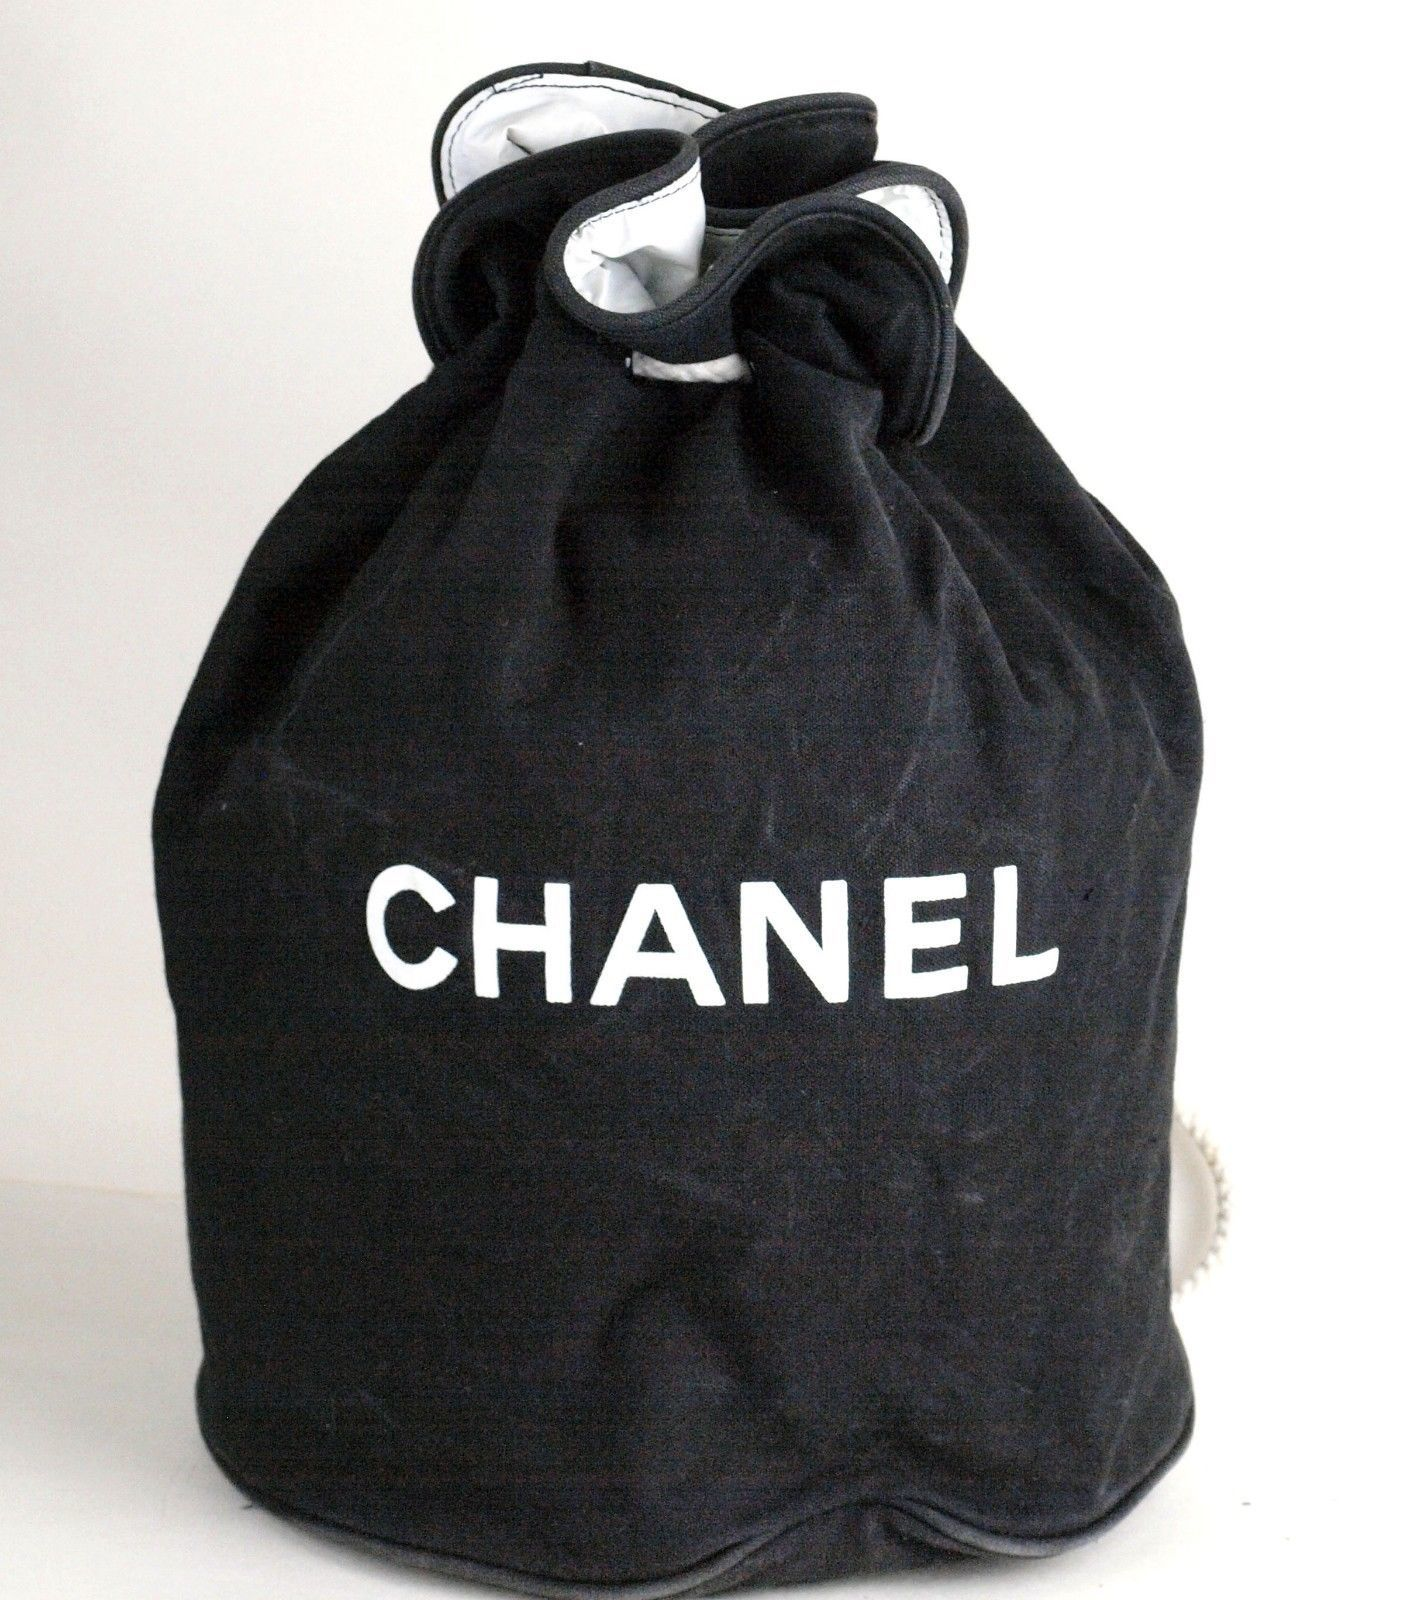 fdbf7e676893 Auth CHANEL Paris Black Cotton Canvas and 40 similar items